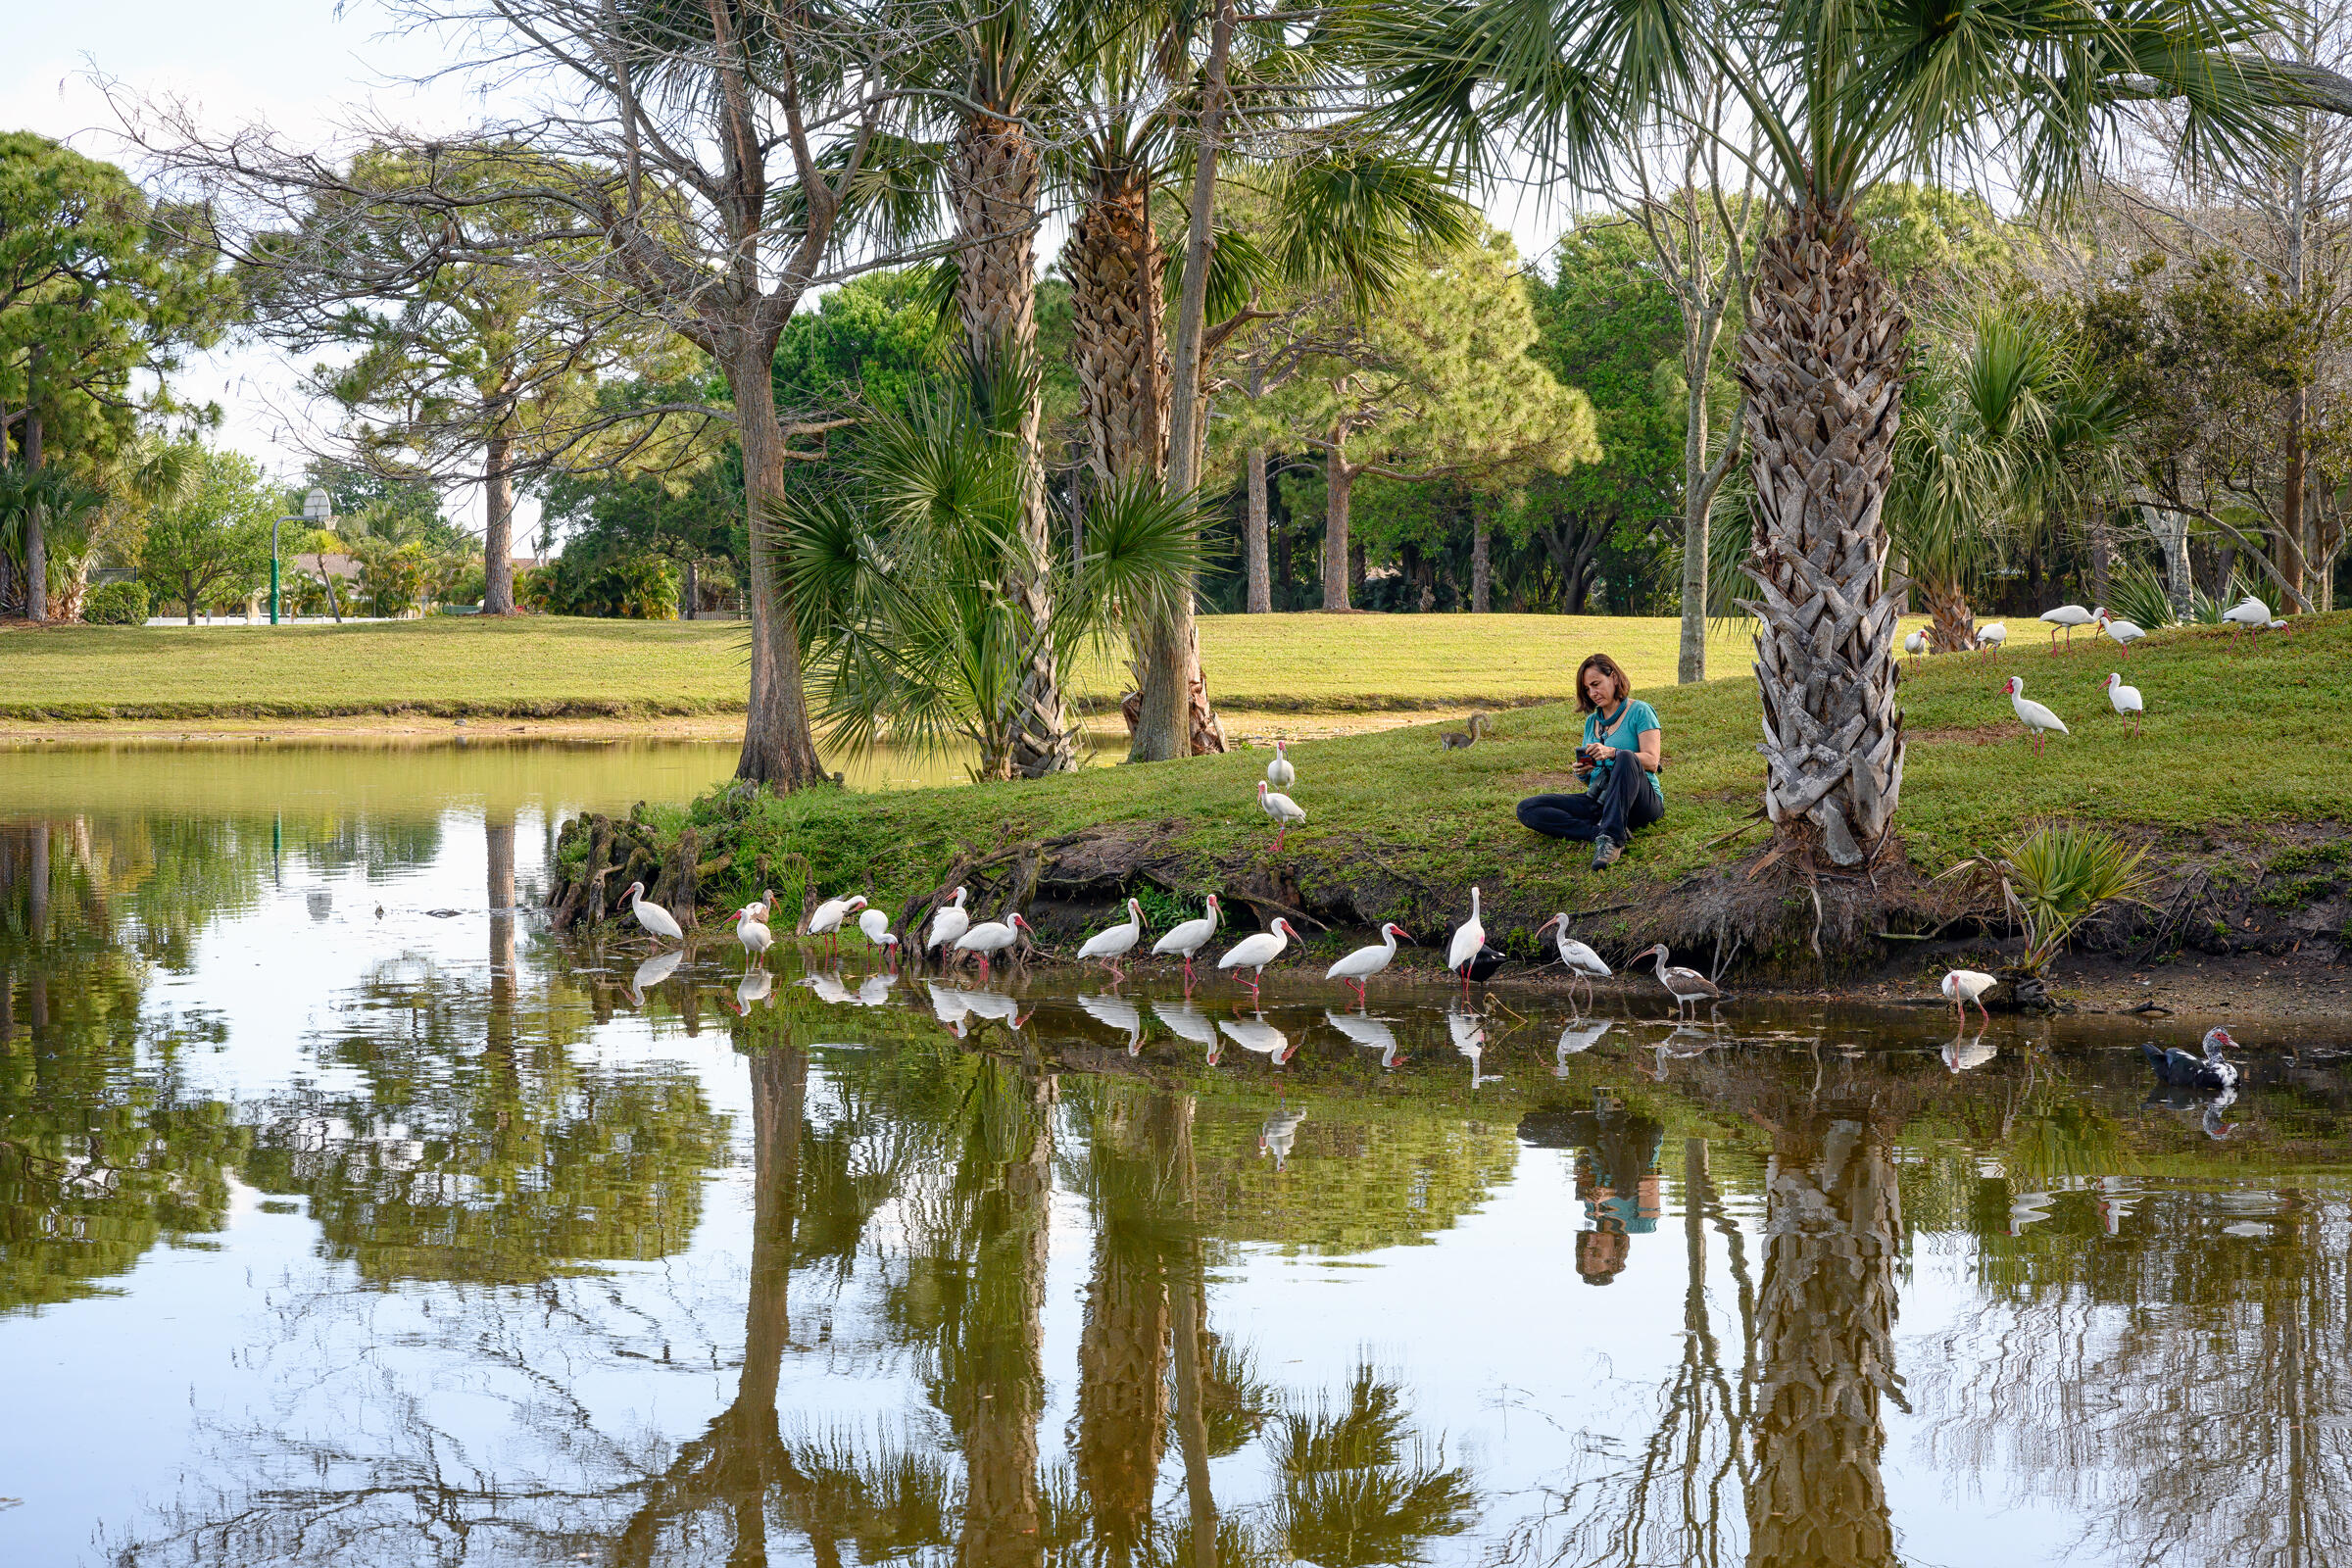 From across a pond, we see a woman crouched on a shore with about a dozen White Ibis lined up along the bank and a few more ibis scattered on the lawn behind her.